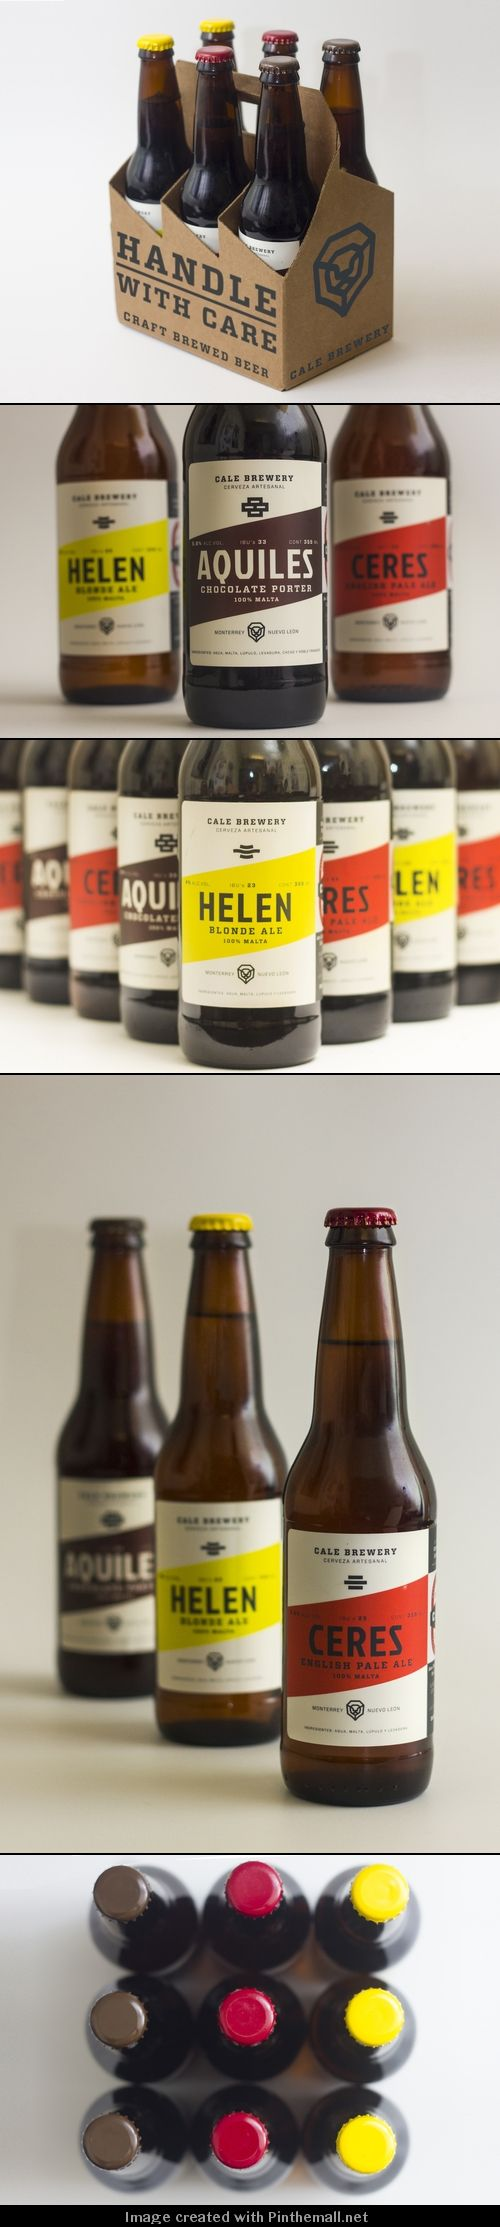 Label / Cale Brewery | Designed by Suizopop, Cale Brewery is a craft beer company from Monterrey, México.